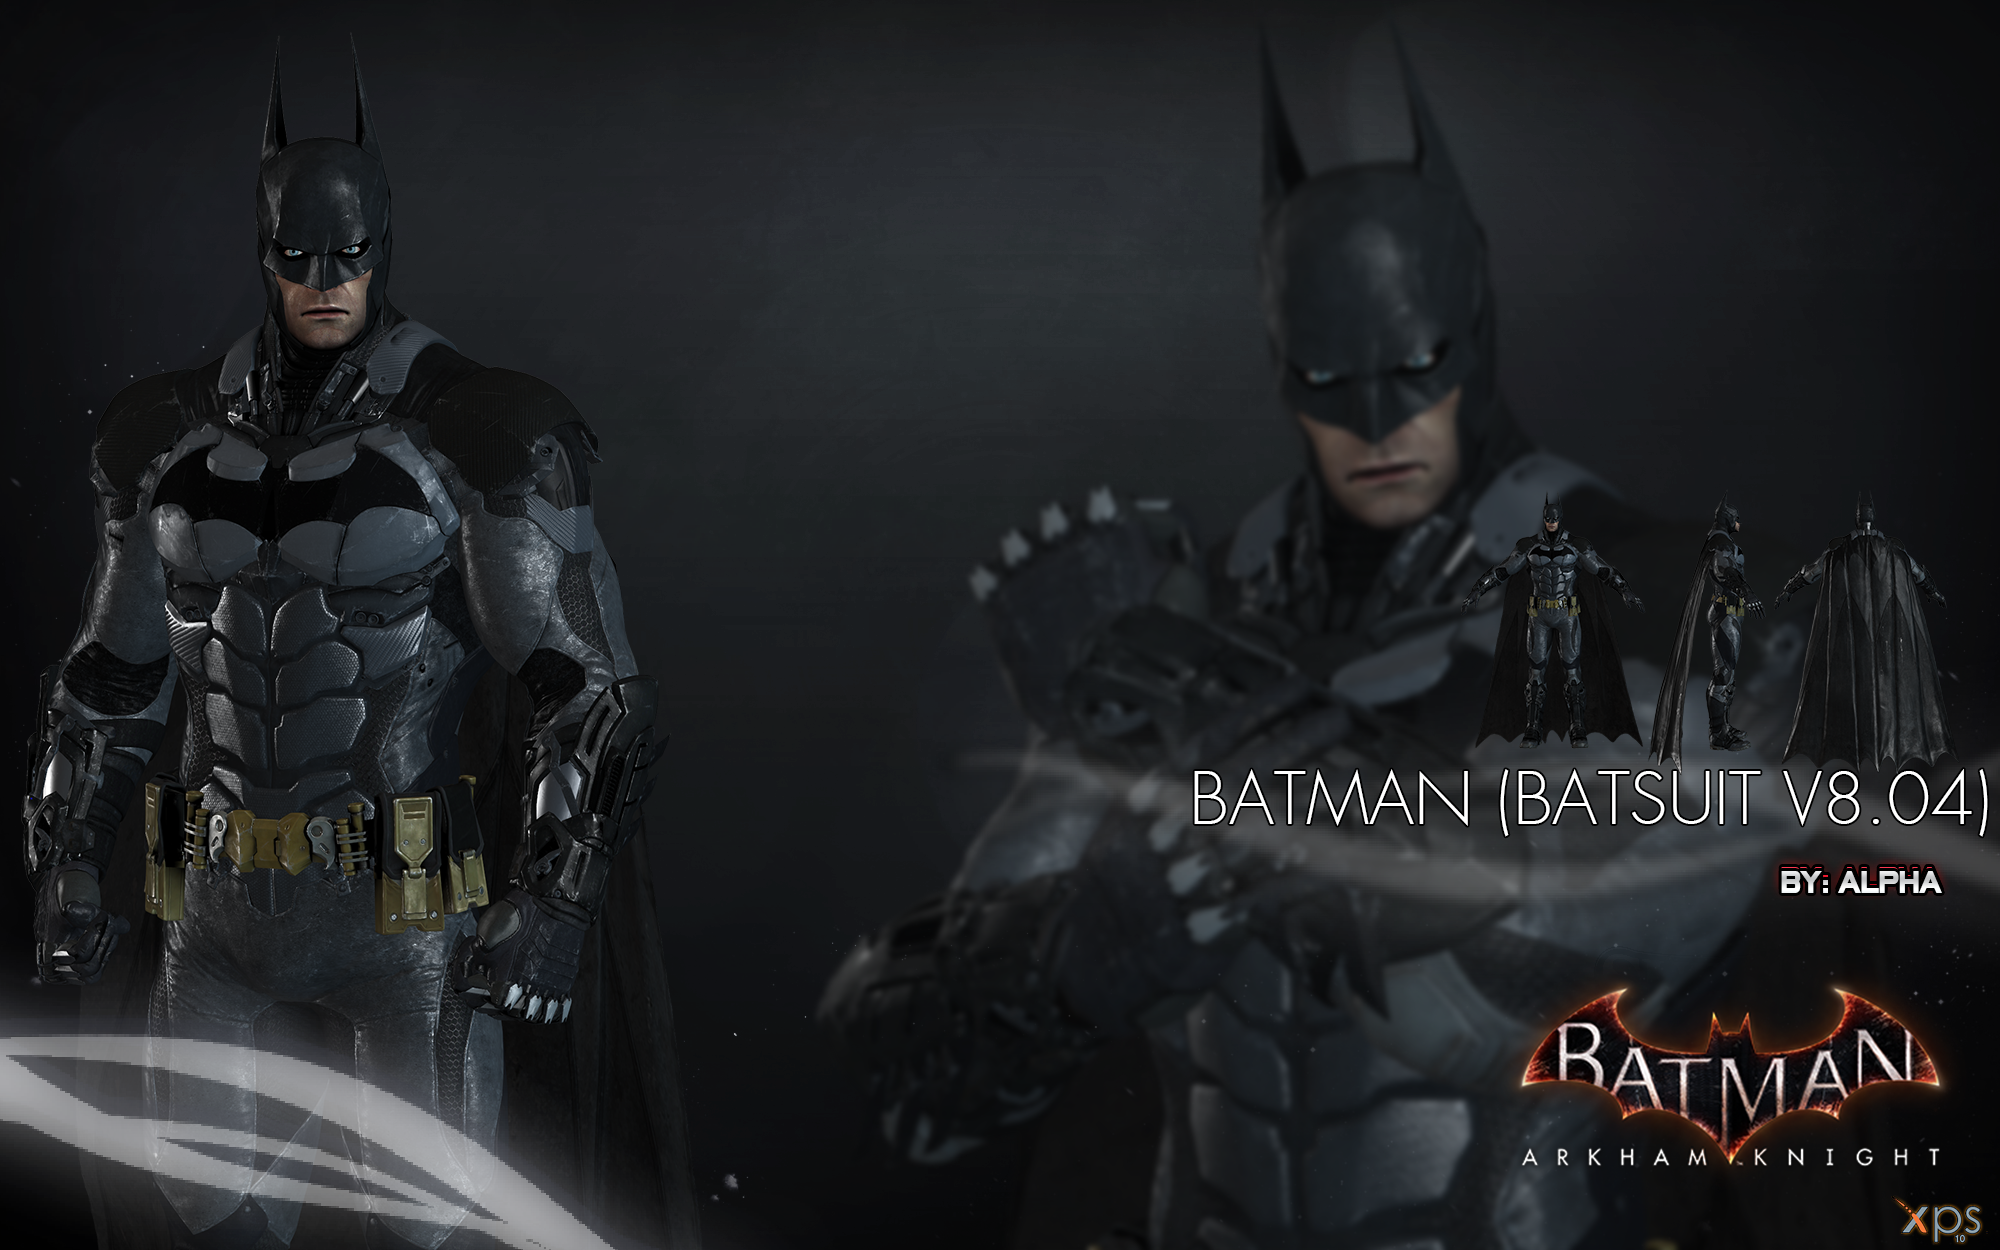 batman arkham knight batman batsuit v804 by